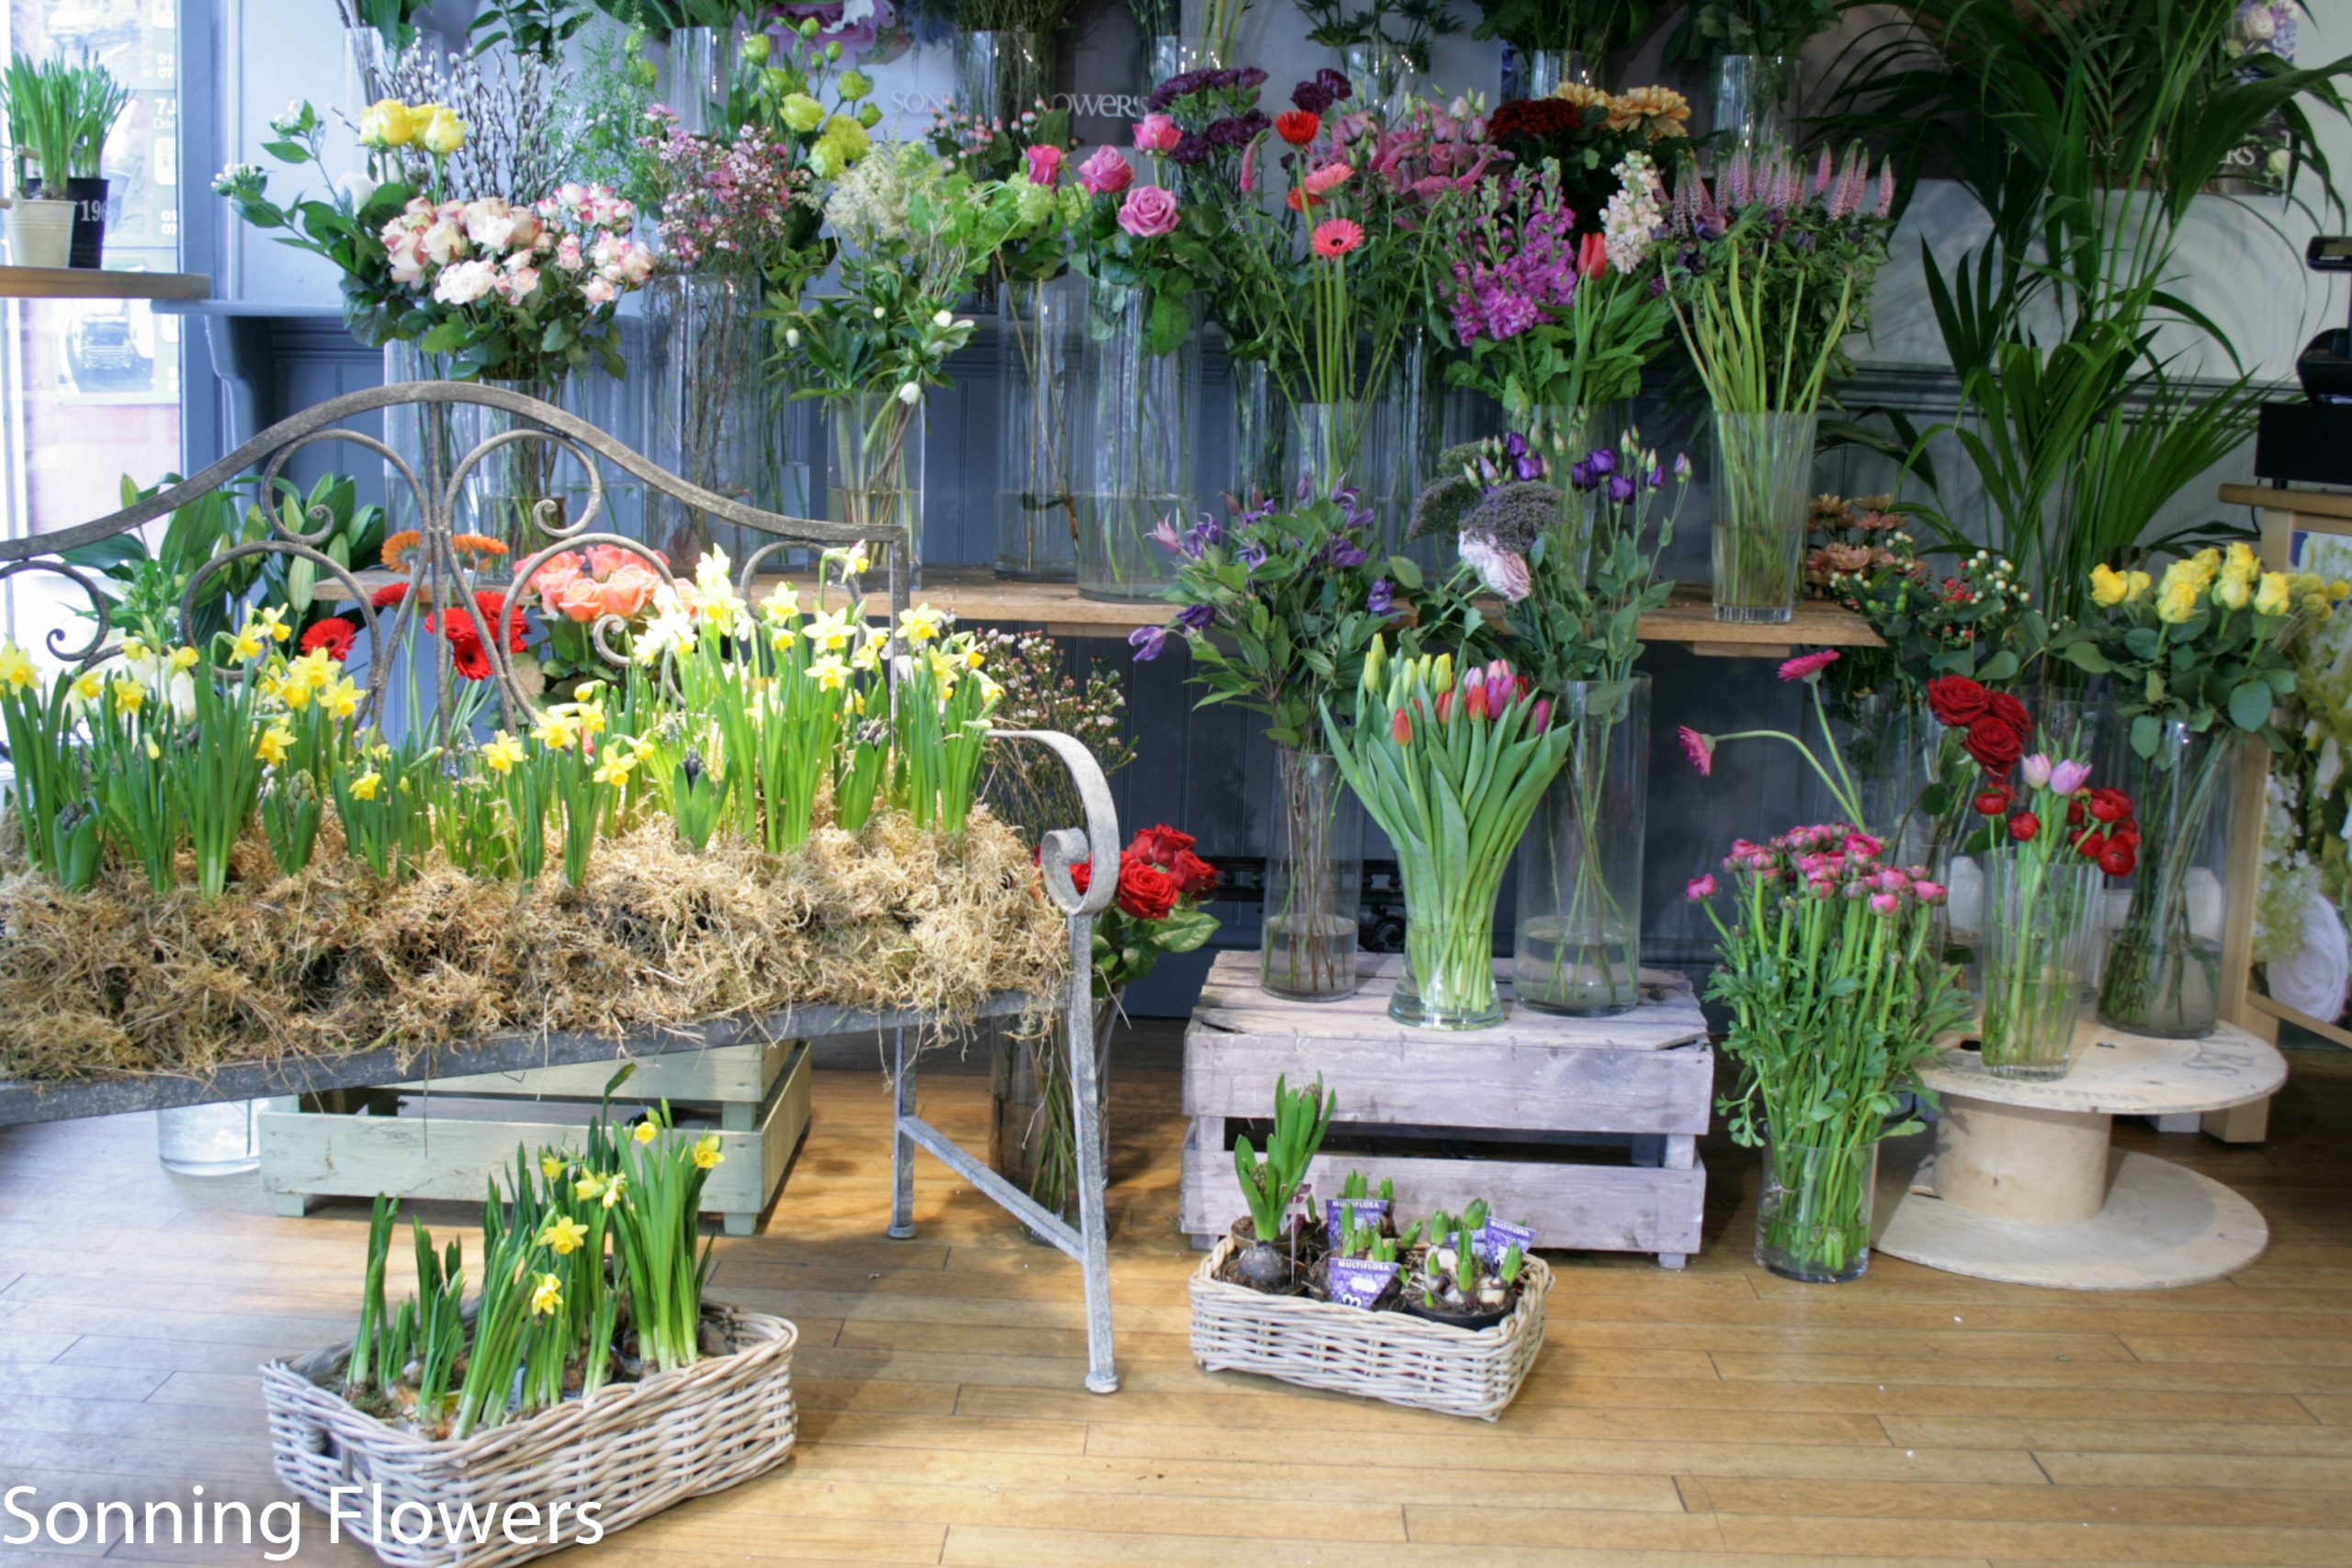 Flower Shop Experience Day